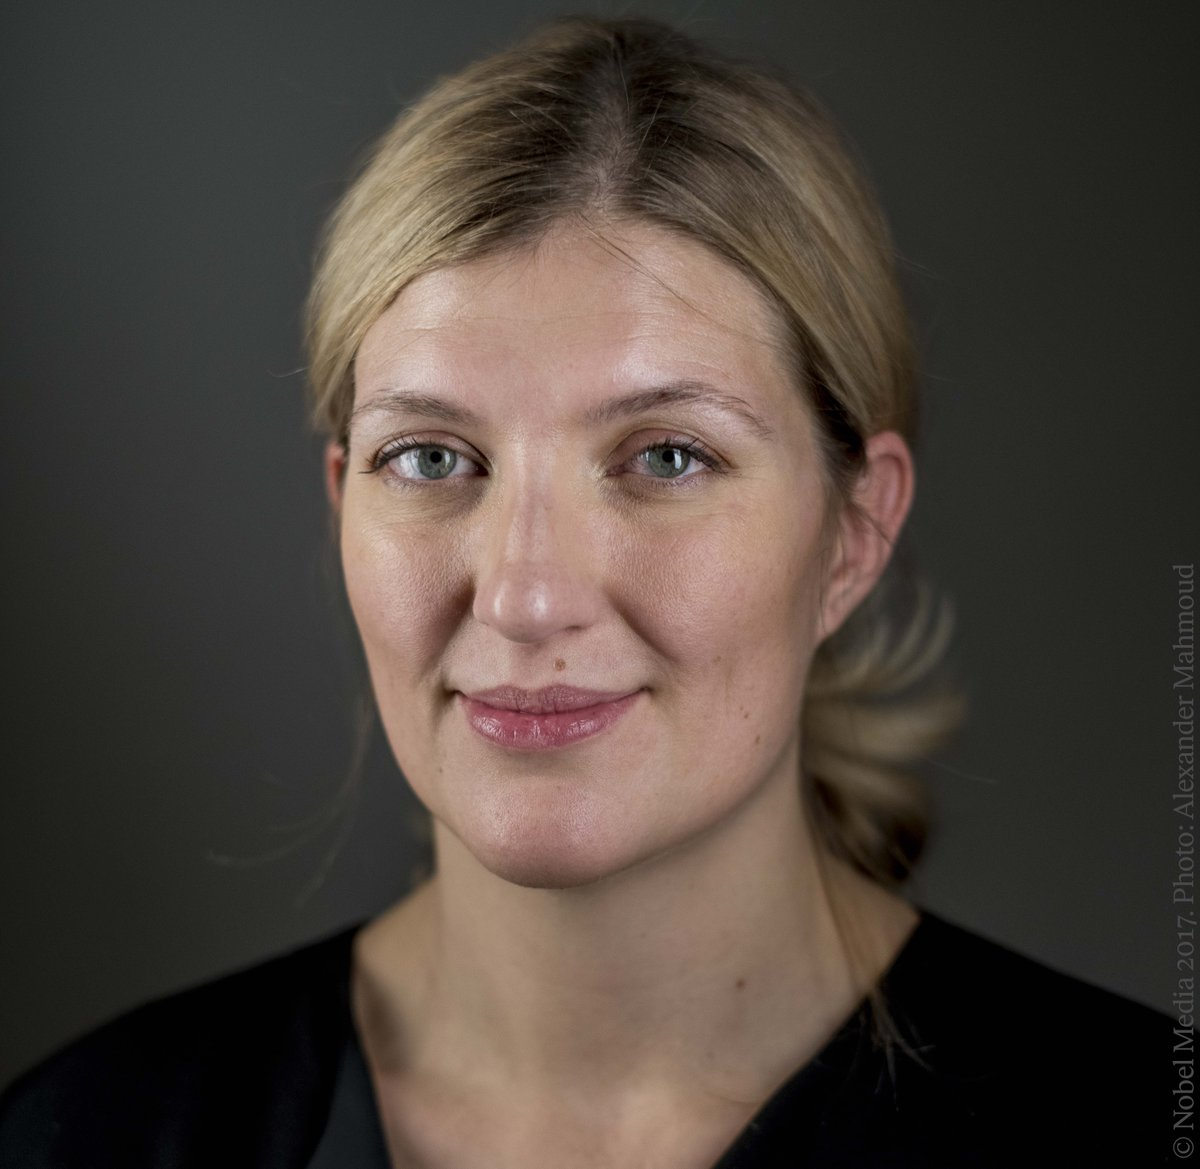 The benefits of diversity should be unquestioned, but how do we move from awareness to change?  On 7 October Beatrice Fihn (@nuclearban) will be participating in discussions regarding gender equality and inclusion at the Nobel Peace Center.  Learn more: https://t.co/GJInQbM3Z0 https://t.co/nbKxhZDPBs